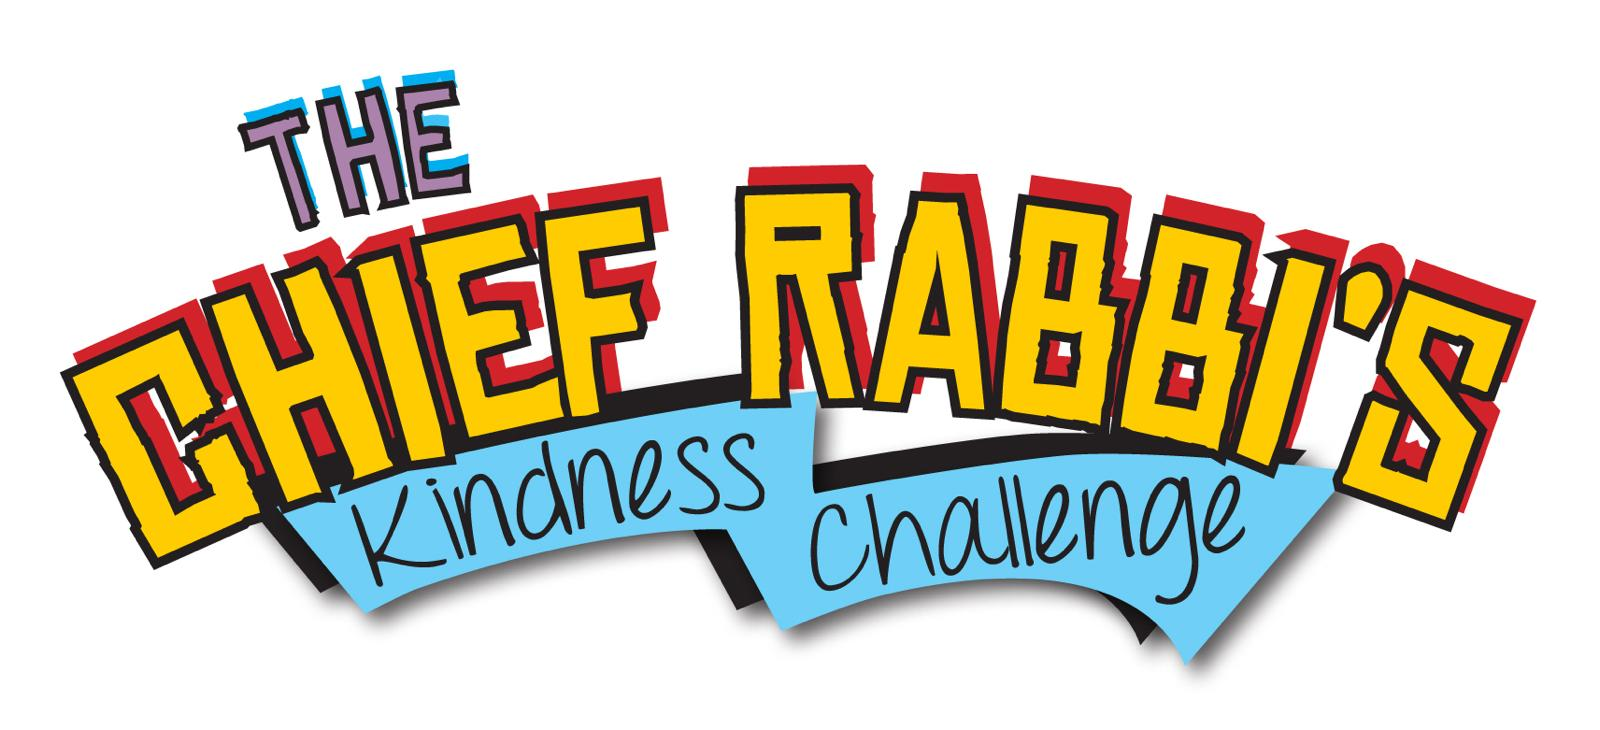 Chief Rabbi Challenge